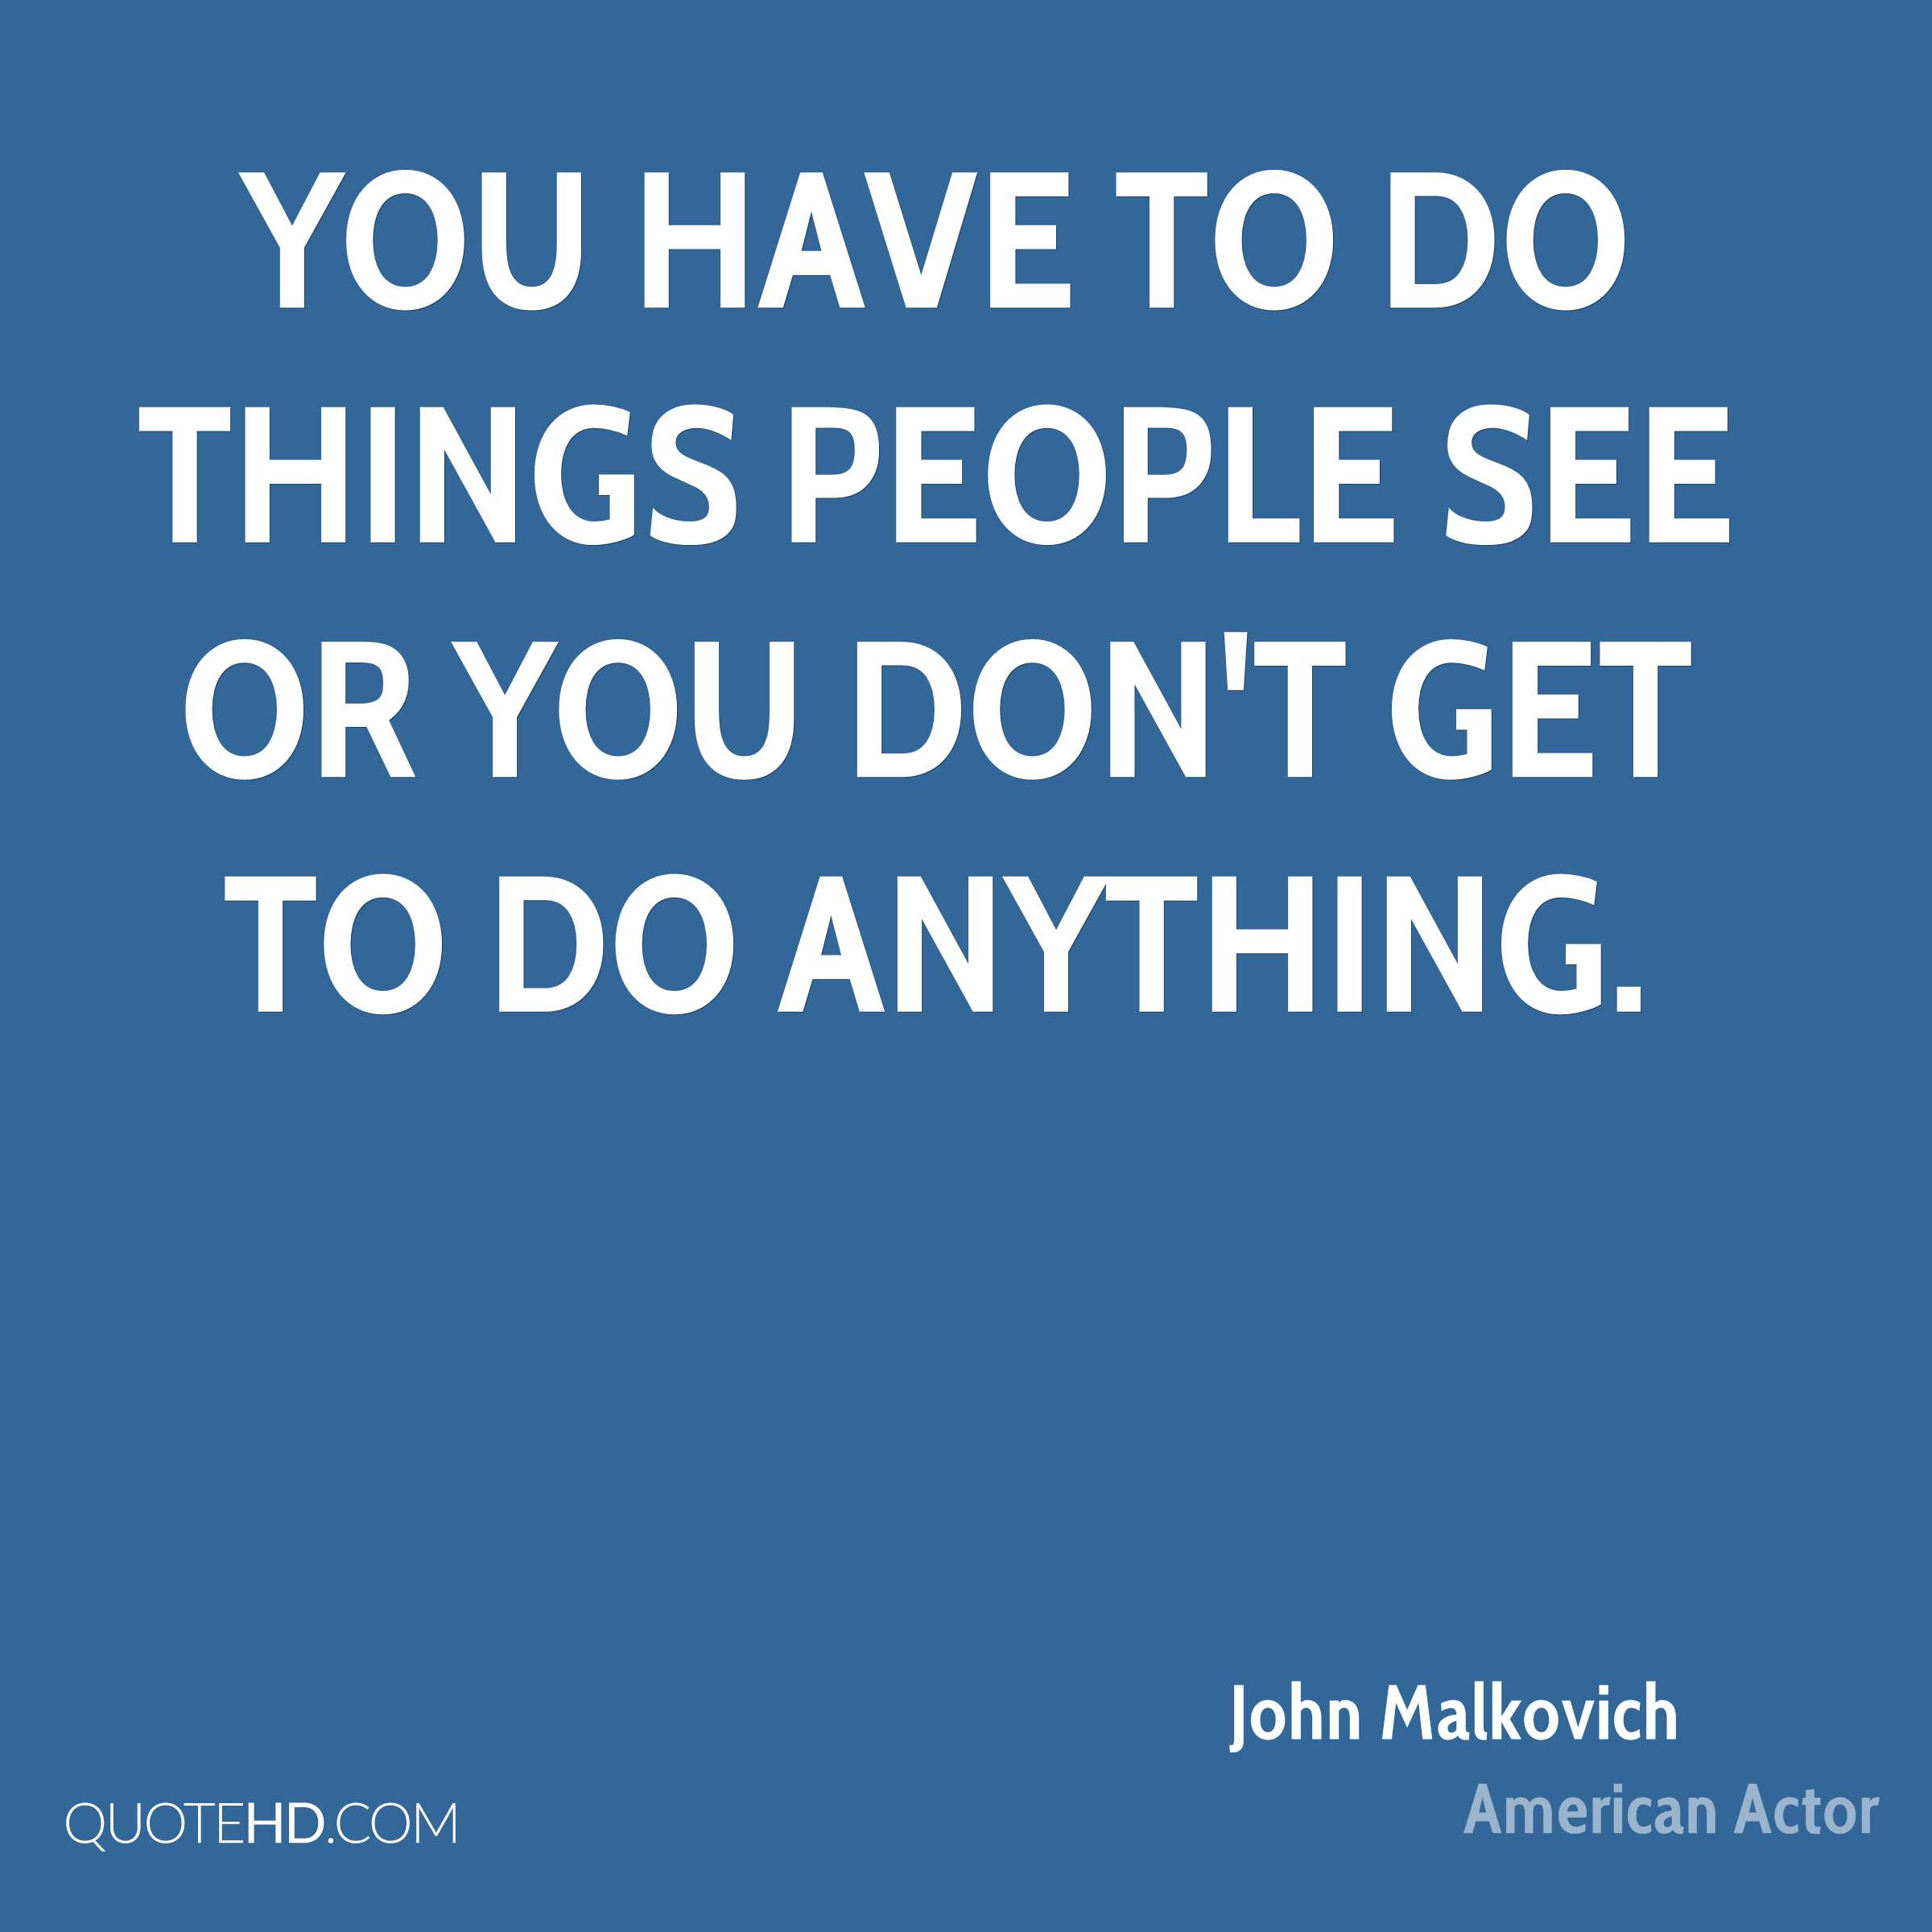 You have to do things people see or you don't get to do anything.